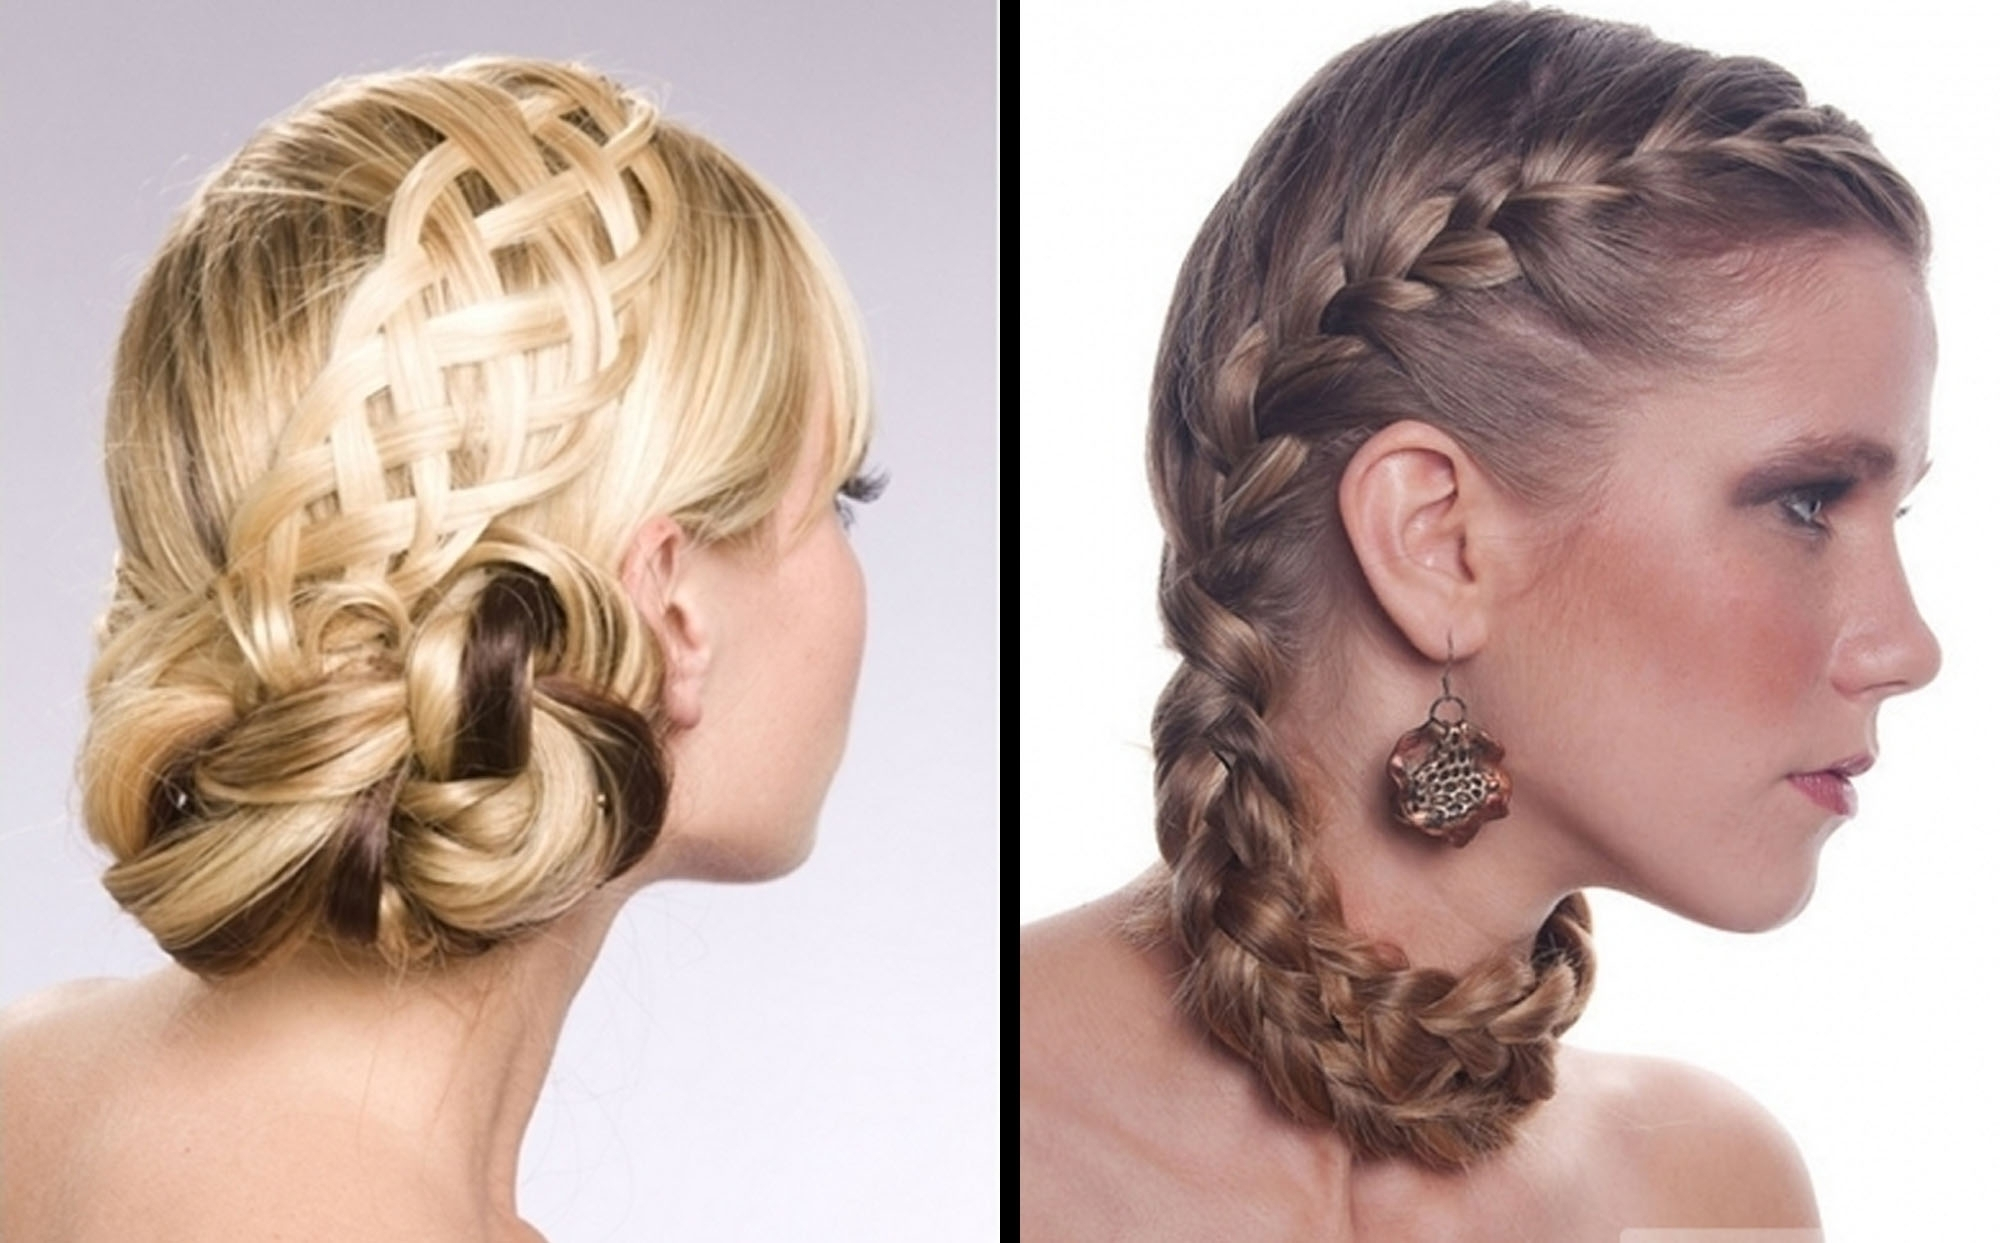 Hairstyles For Homecoming Updos Hair Braided Updo Hairstyles Salon Pertaining To Homecoming Updos Medium Hairstyles (View 7 of 15)